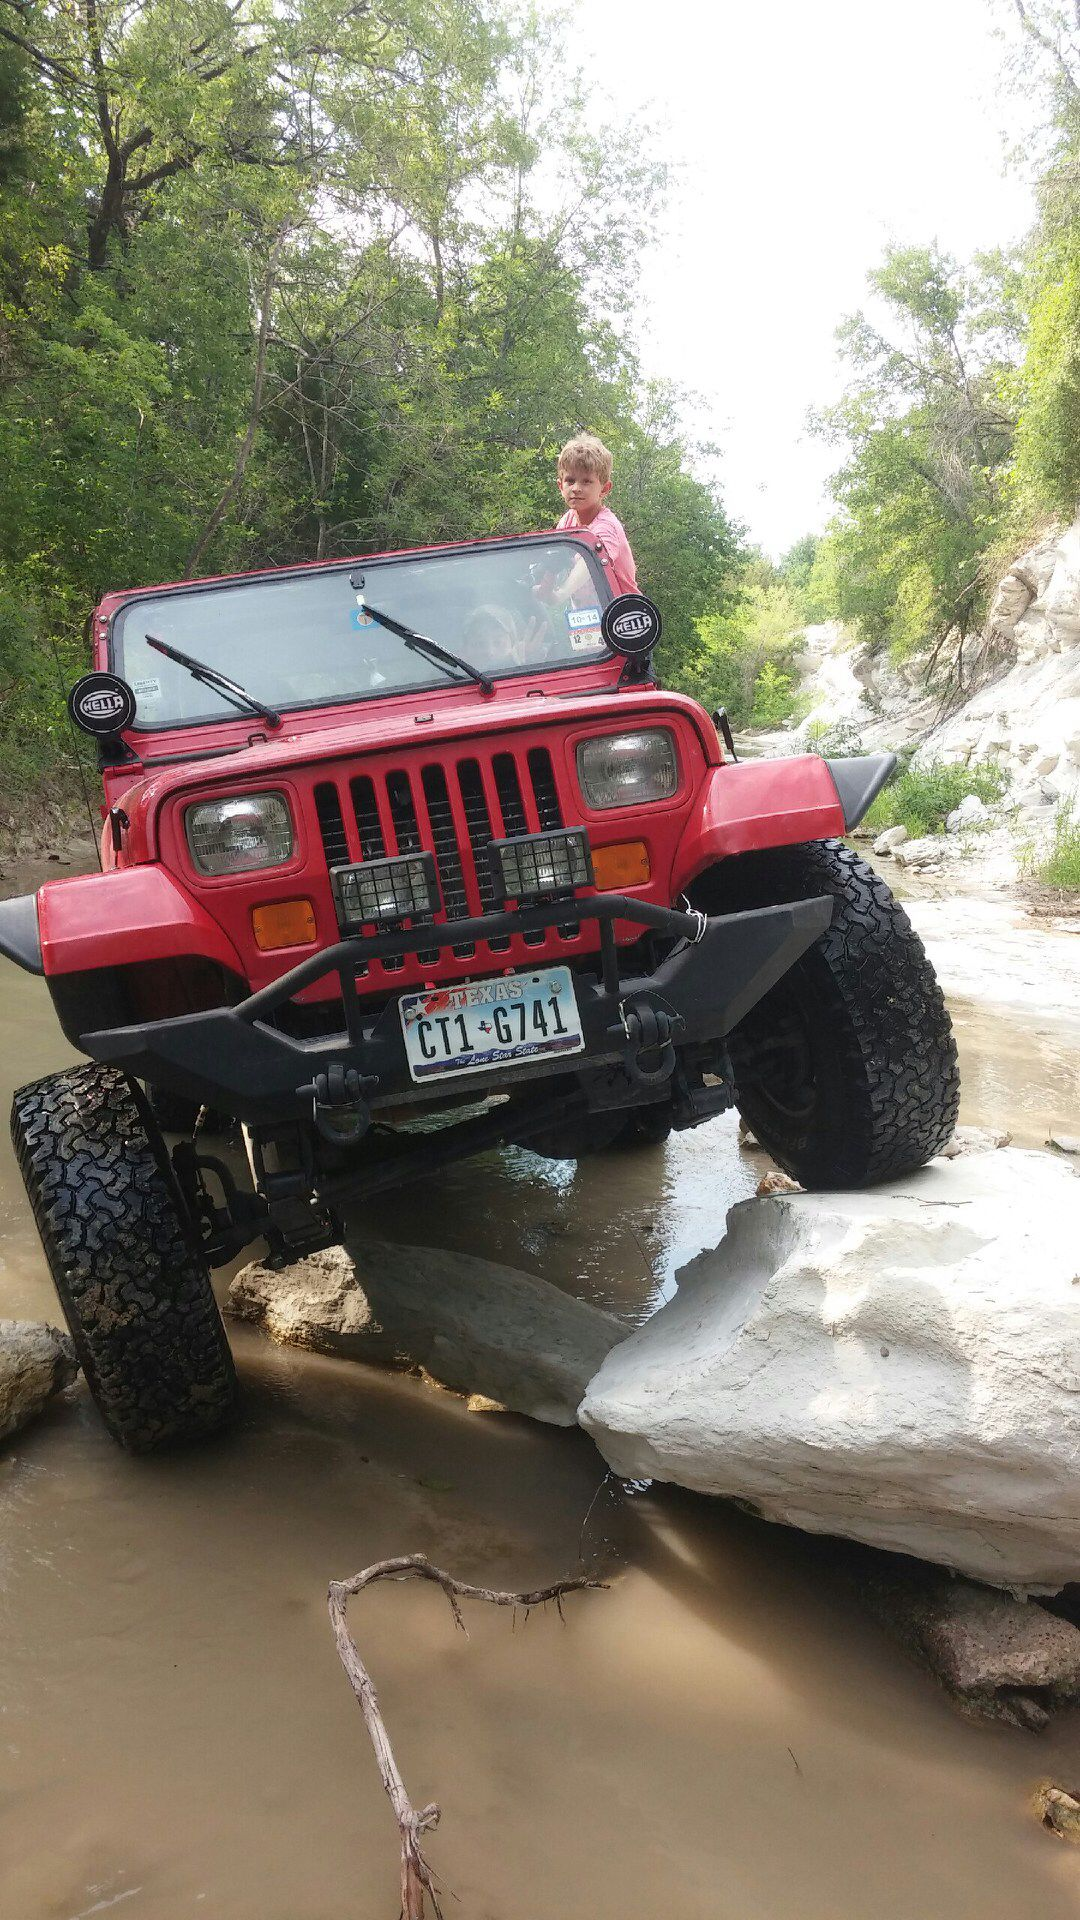 Flexing In A Jeep Wrangler It S A 1993 Yj Running 33 S With A 3 Inch Body Lift And A 2 Inch Suspension Lift Jeep Yj Jeep Wrangler Jeep